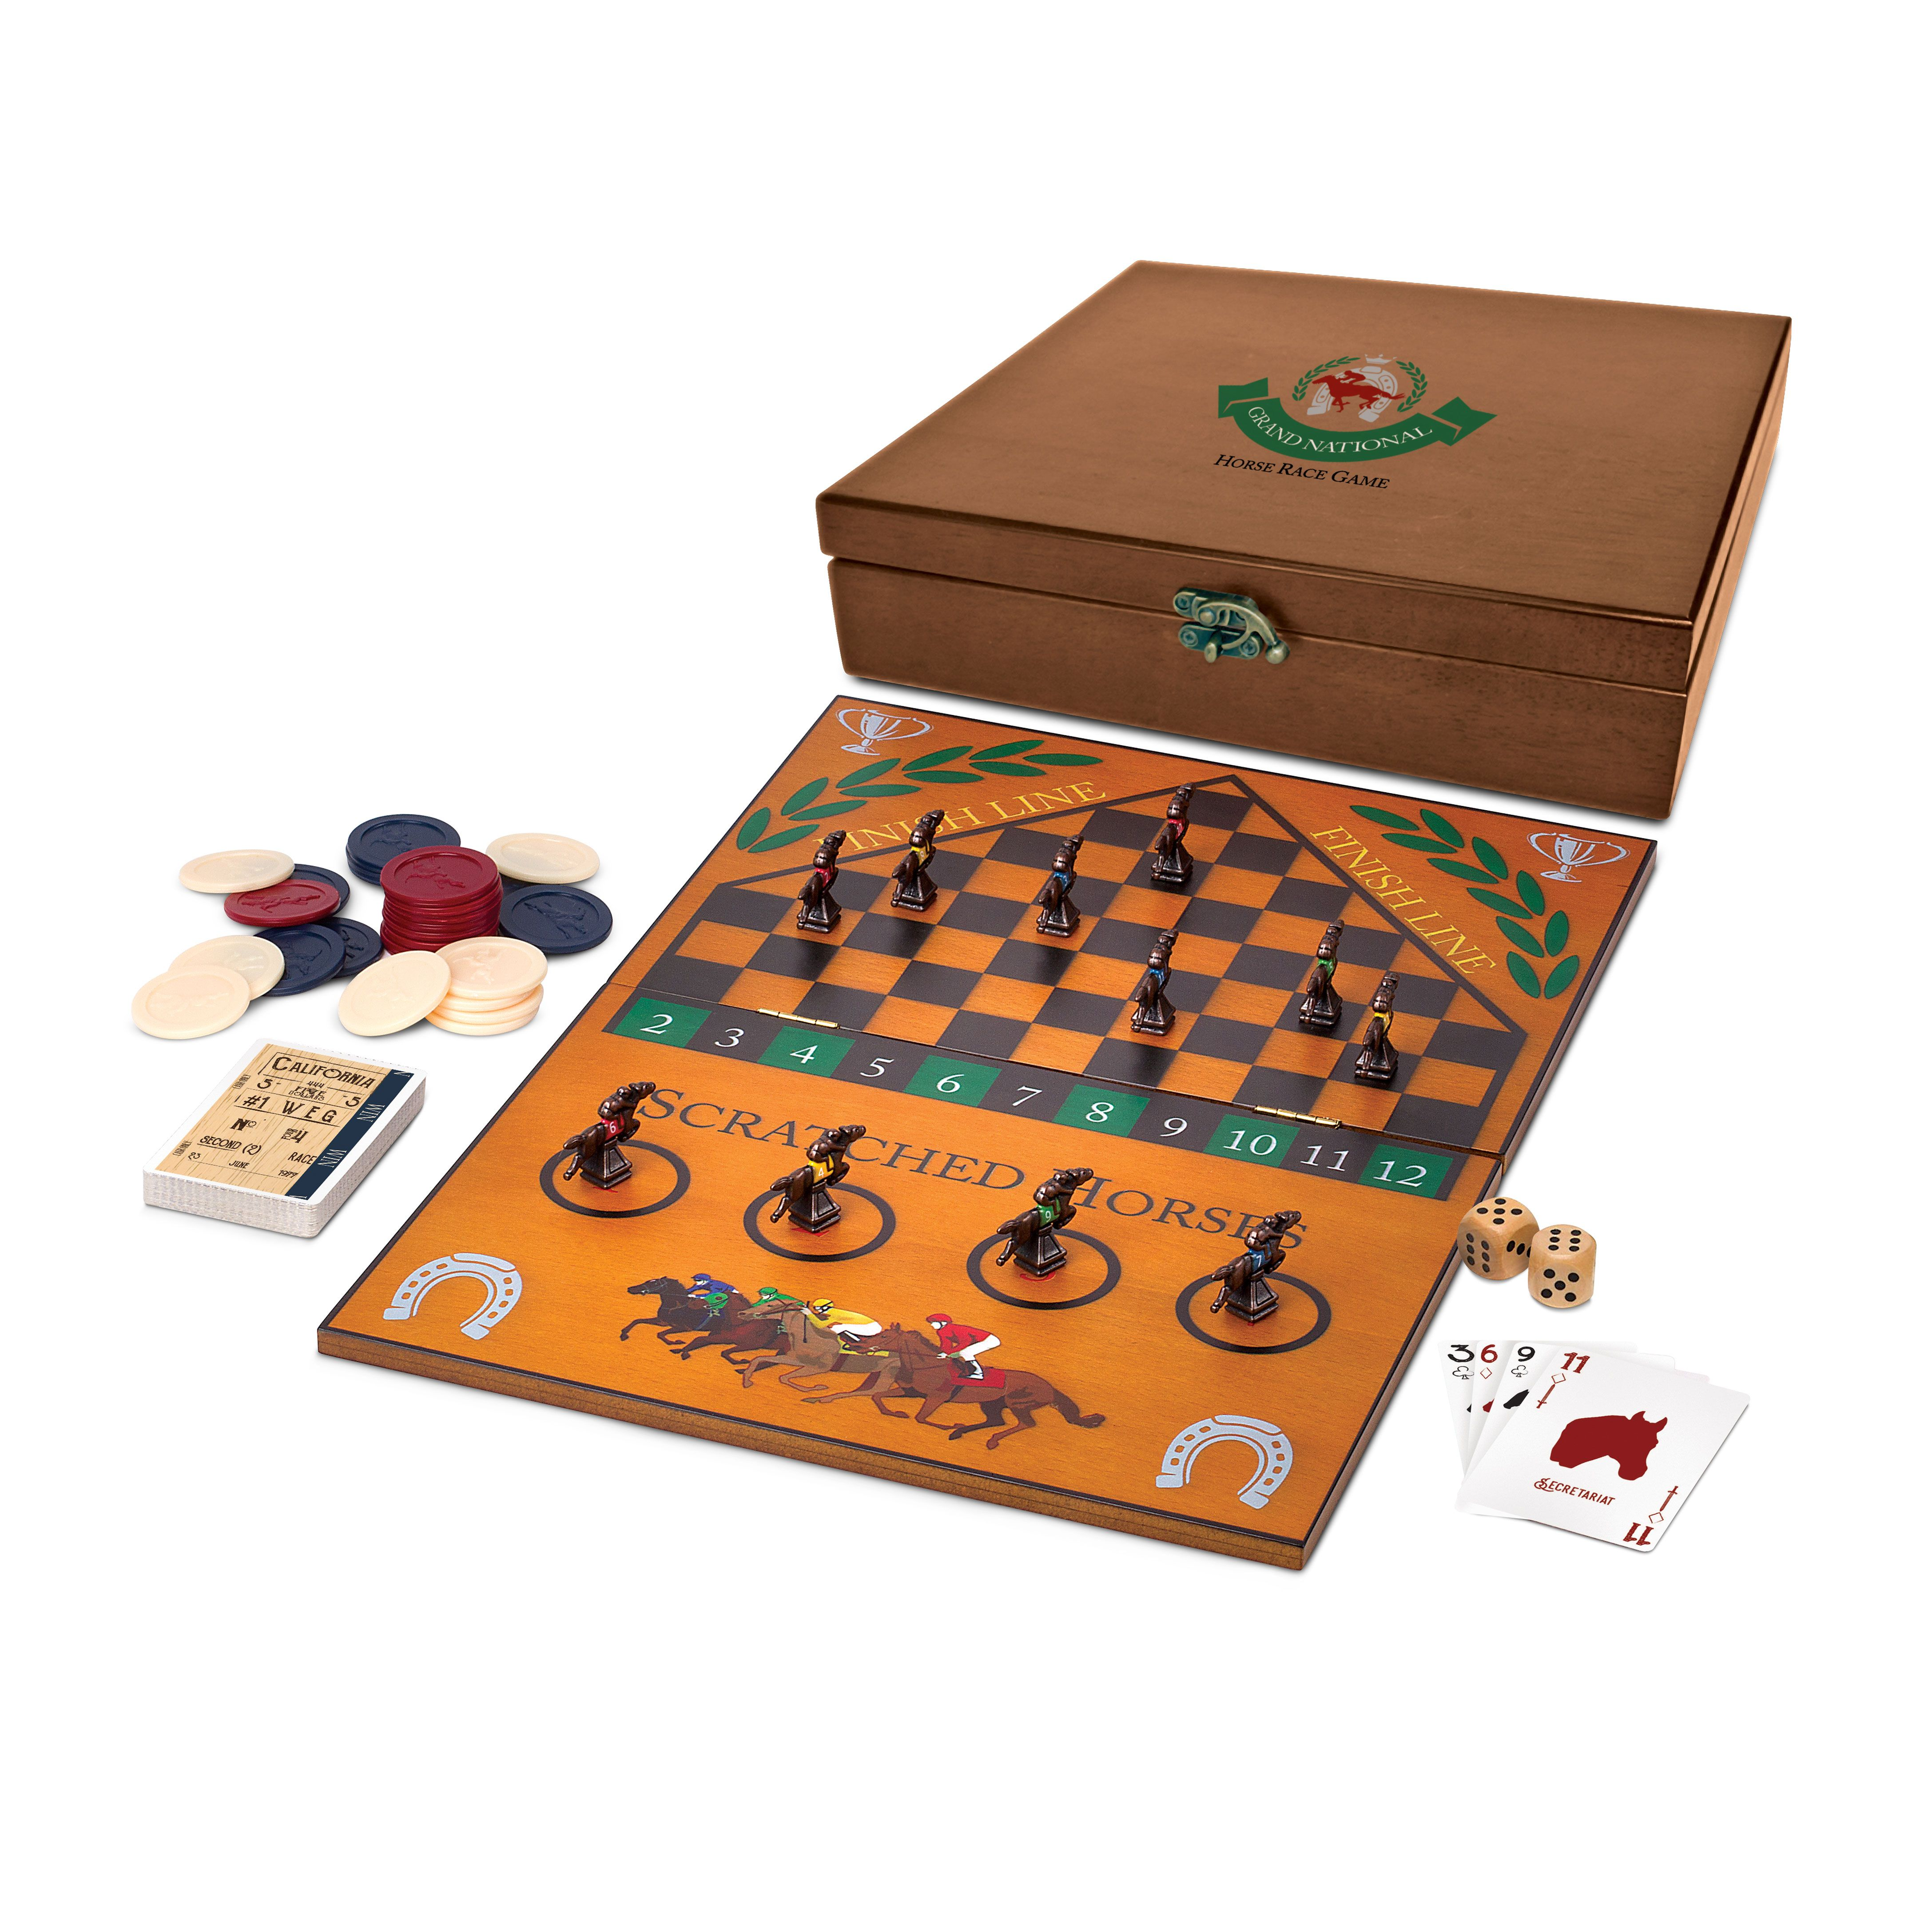 Grand national horse race game in 2021 horse race game